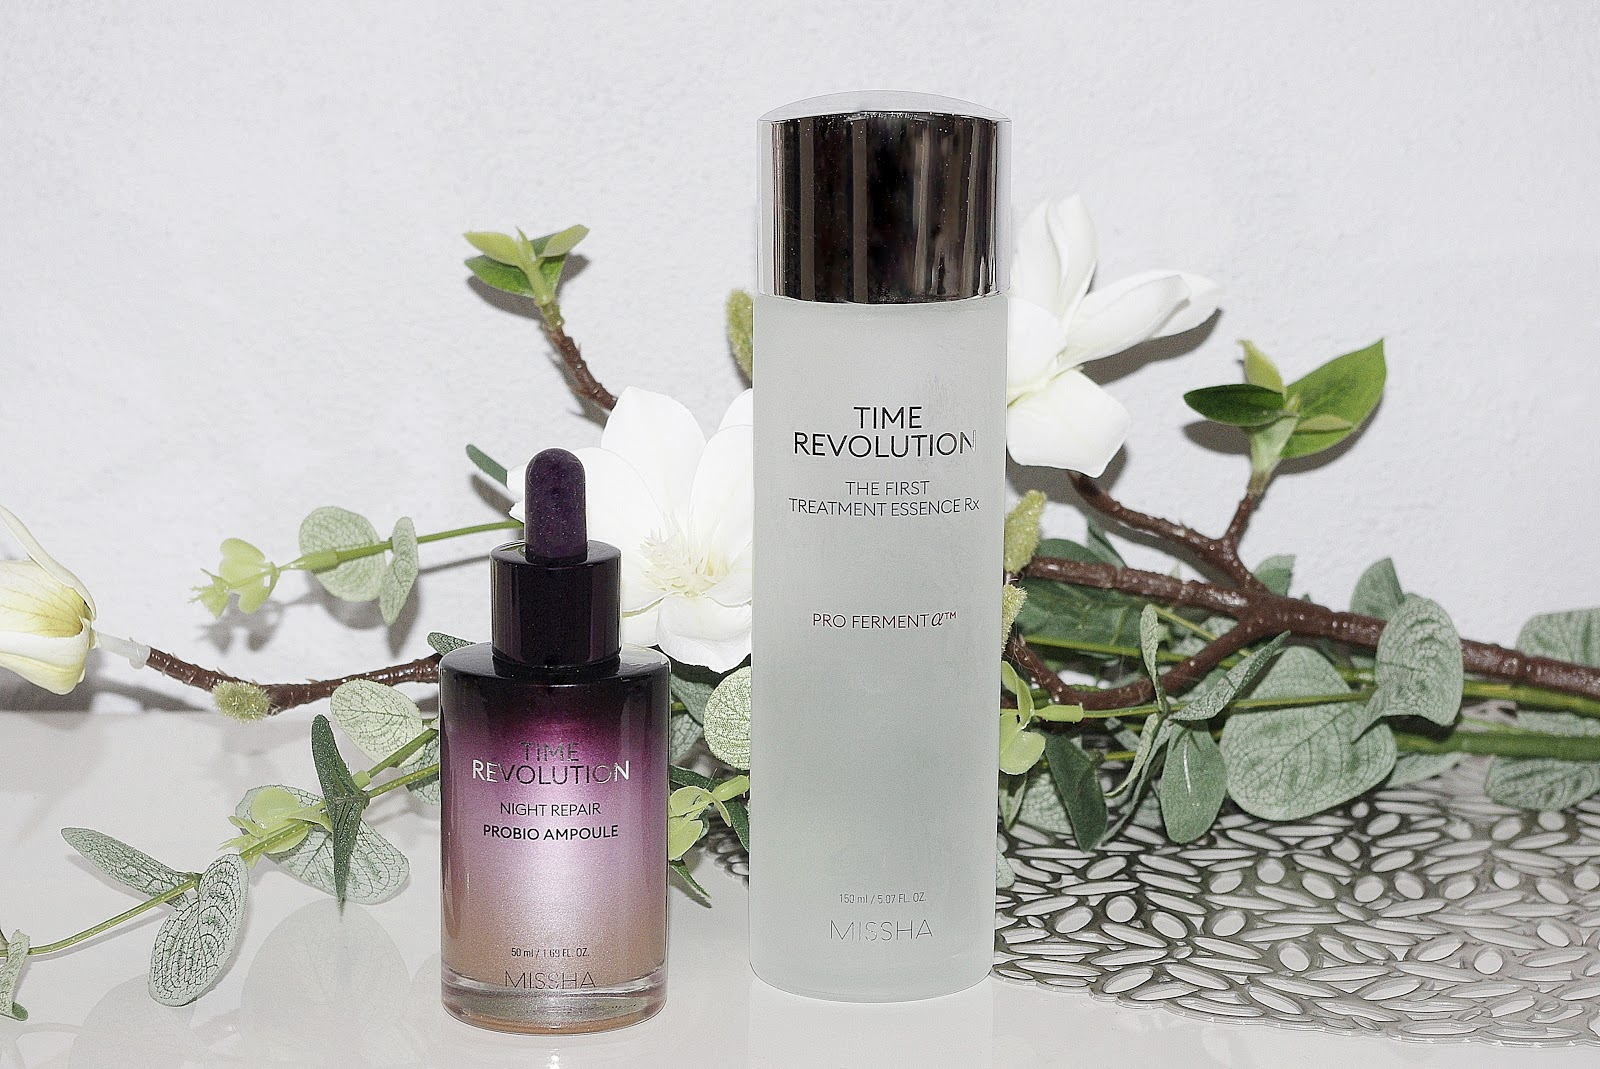 Missha Time Revolution The First Treatment Essence Rx Time Revolution Night Repair Probio Ampoule